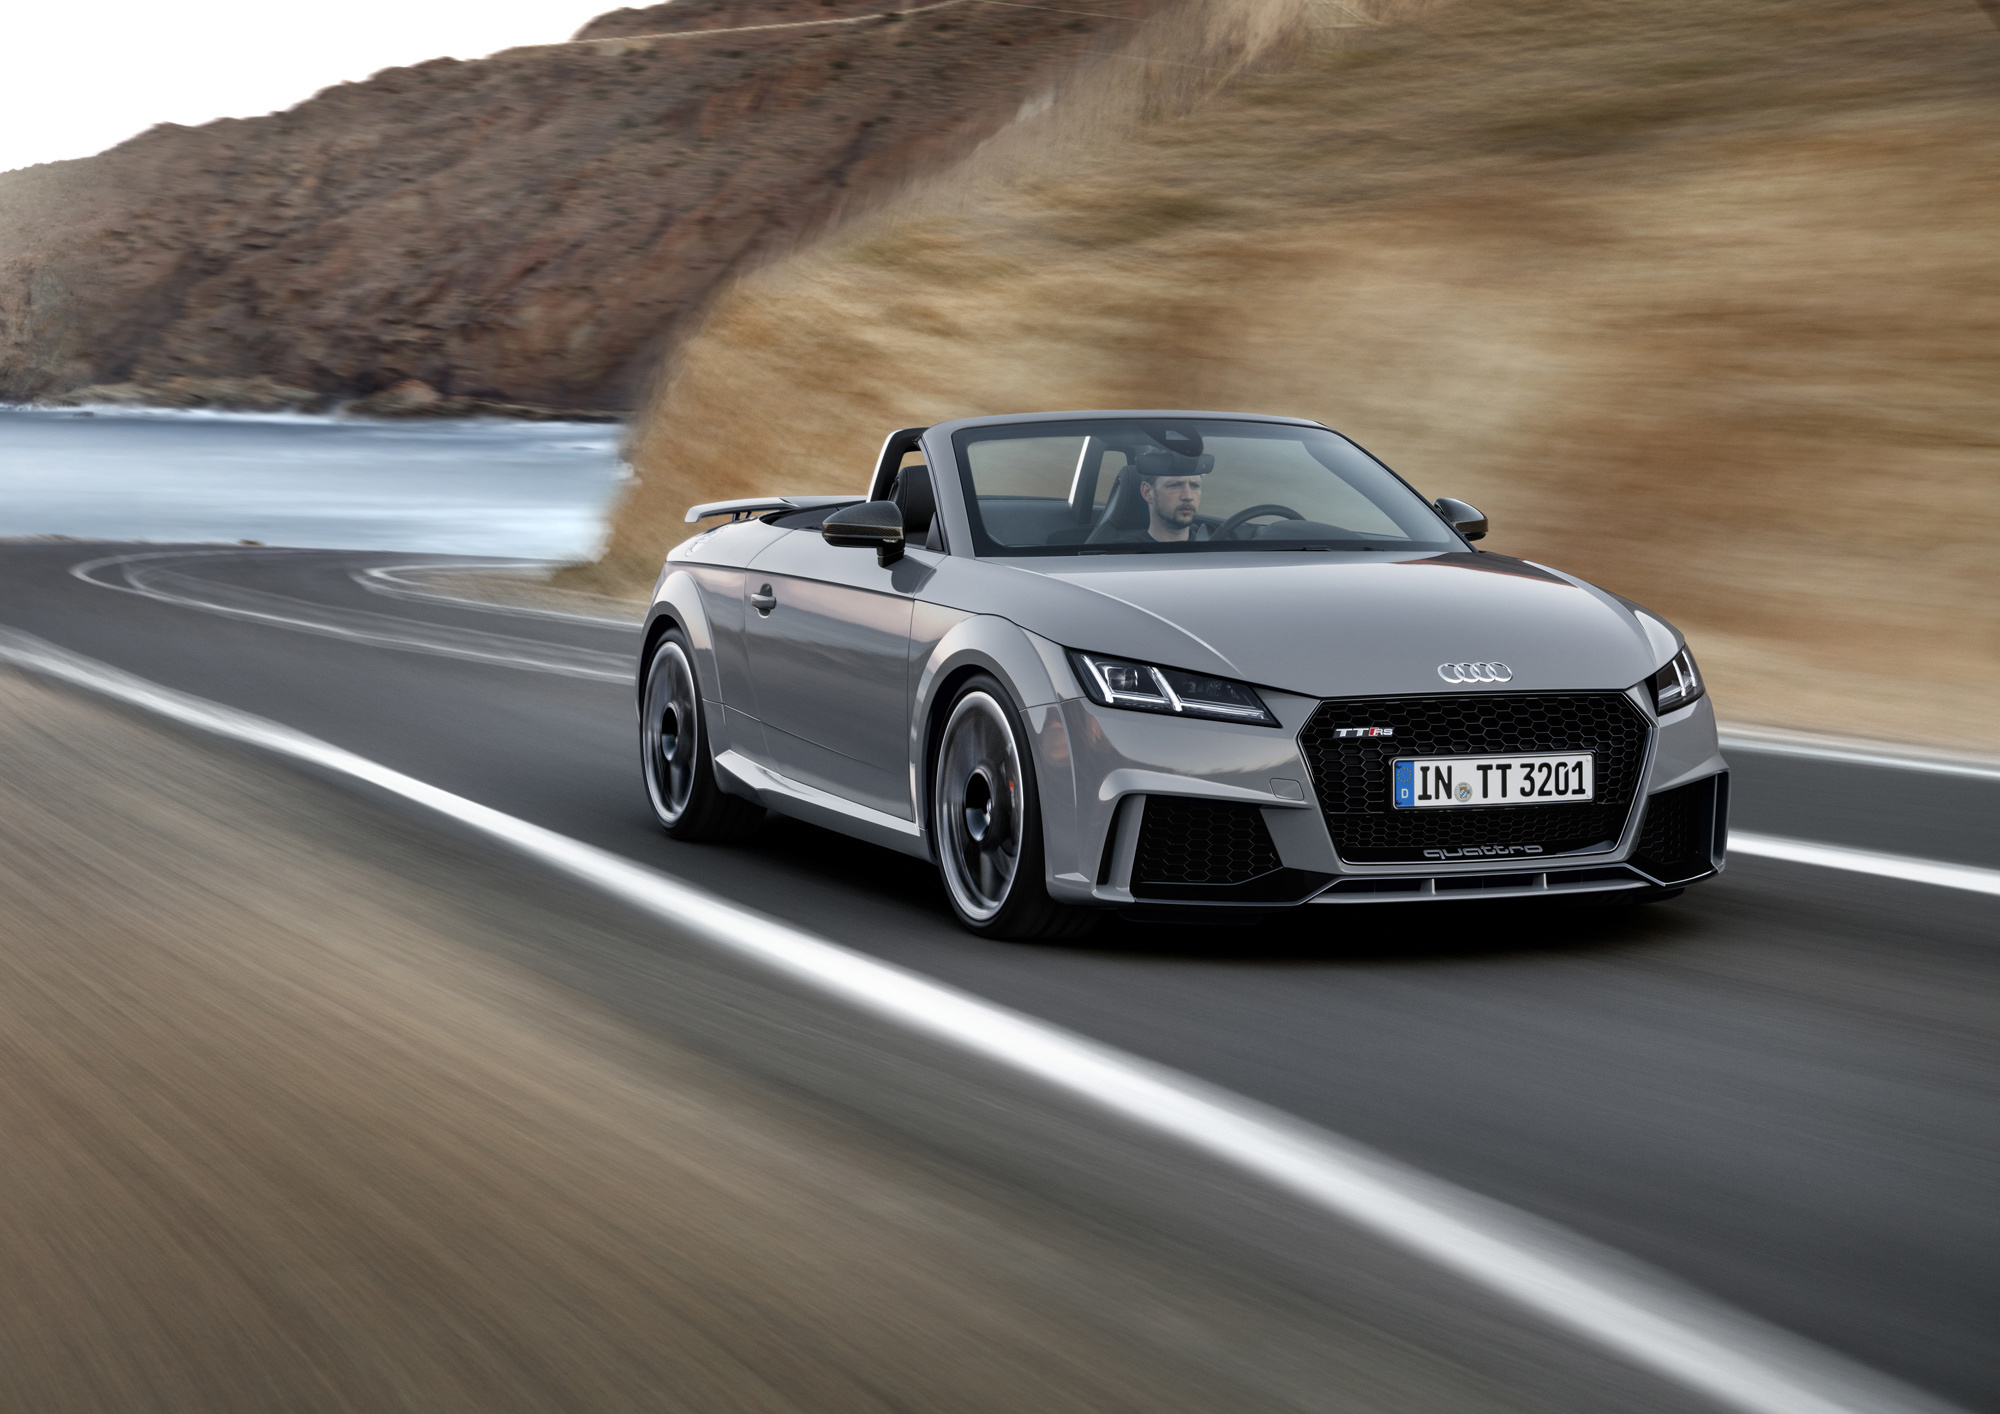 audi tt rs wallpapers images photos pictures backgrounds. Black Bedroom Furniture Sets. Home Design Ideas